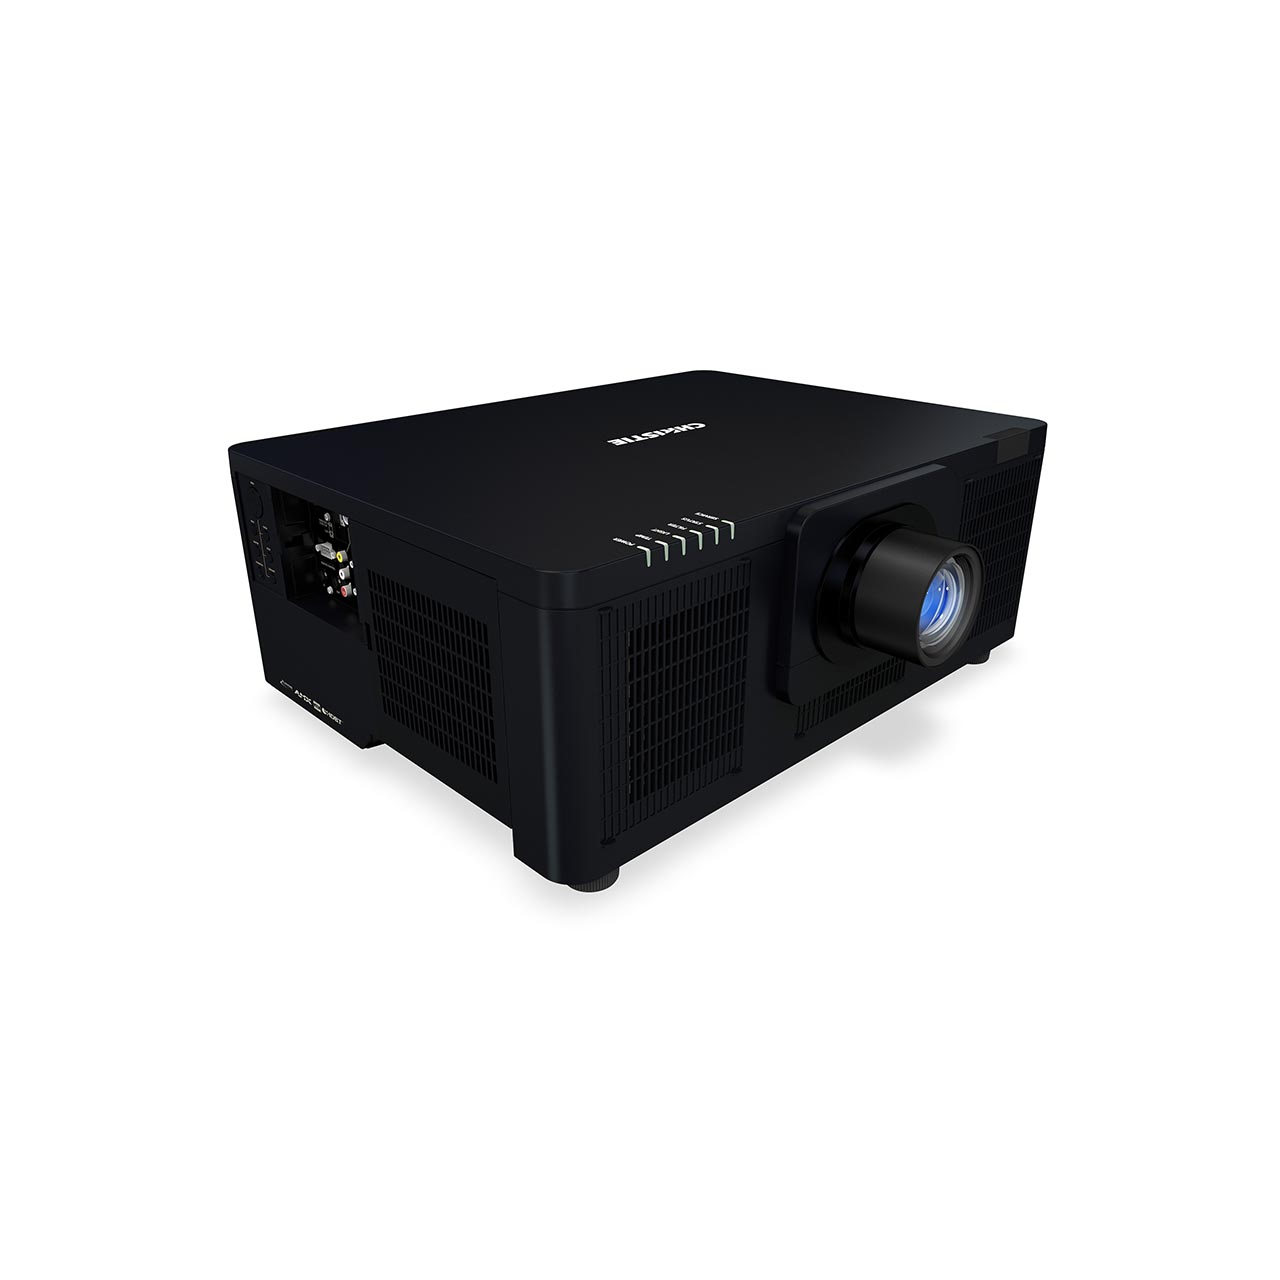 LWU900-DS 3LCD Projector - Certified Refurbished